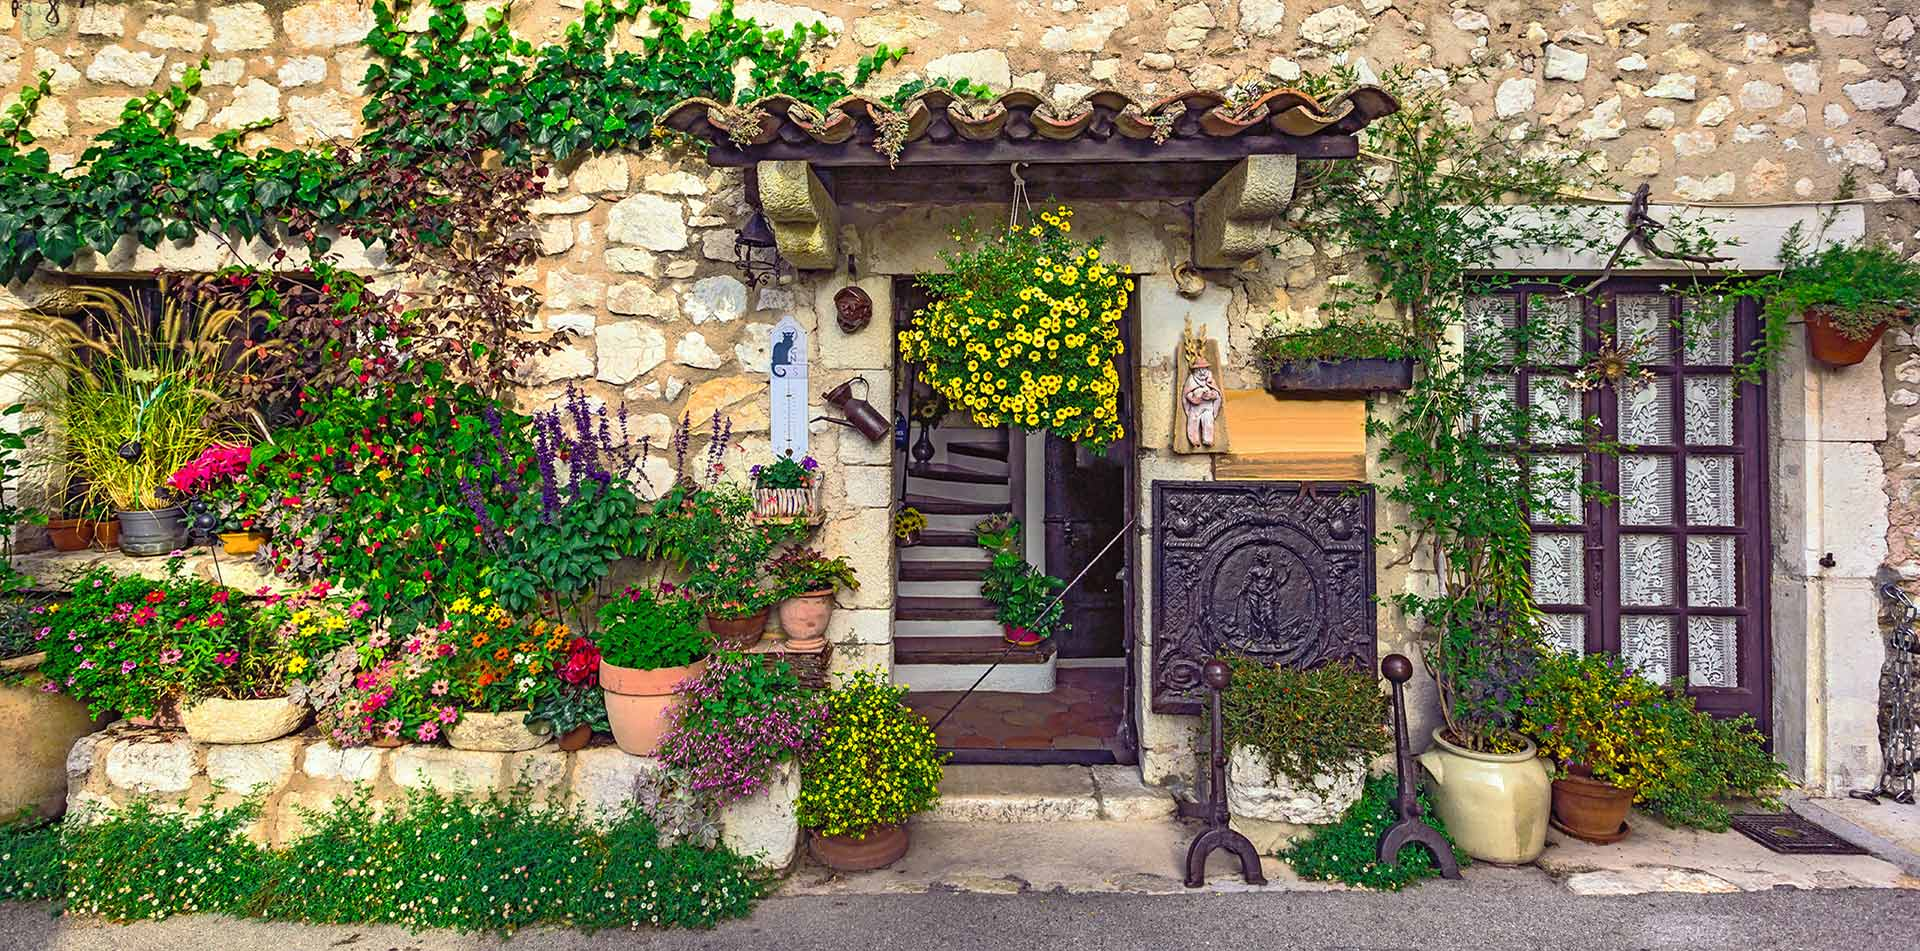 Europe France Provence beautiful old home with colorful flower garden - luxury vacation destinations